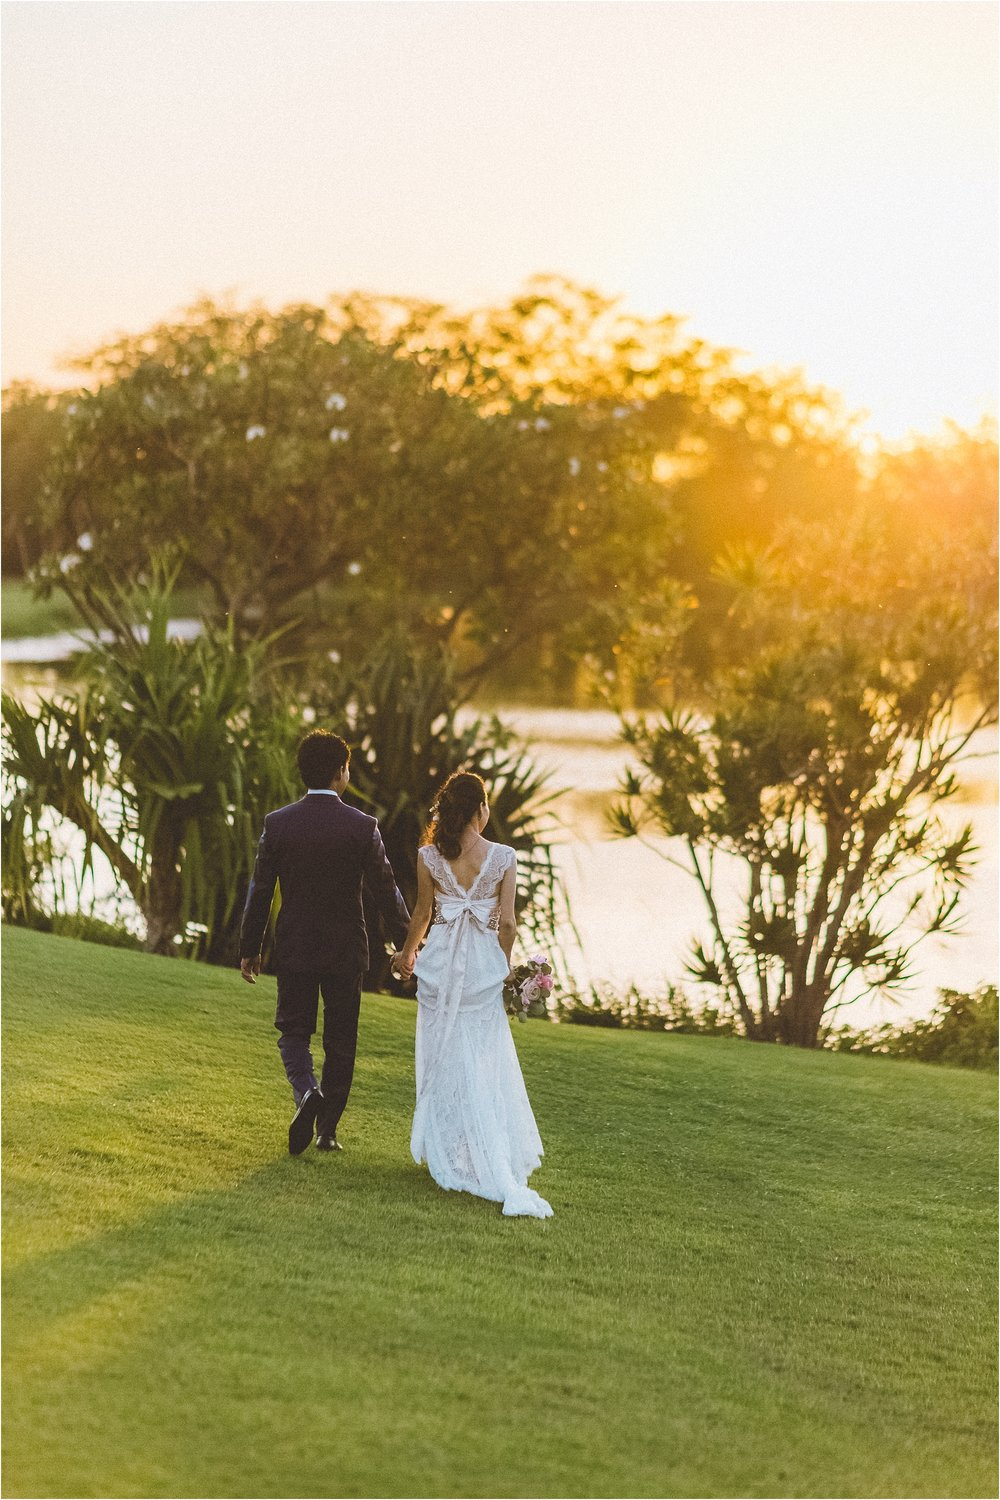 angie-diaz-photography-maui-hawaii-destination-wedding-makena-golf-beach-club_0069.jpg